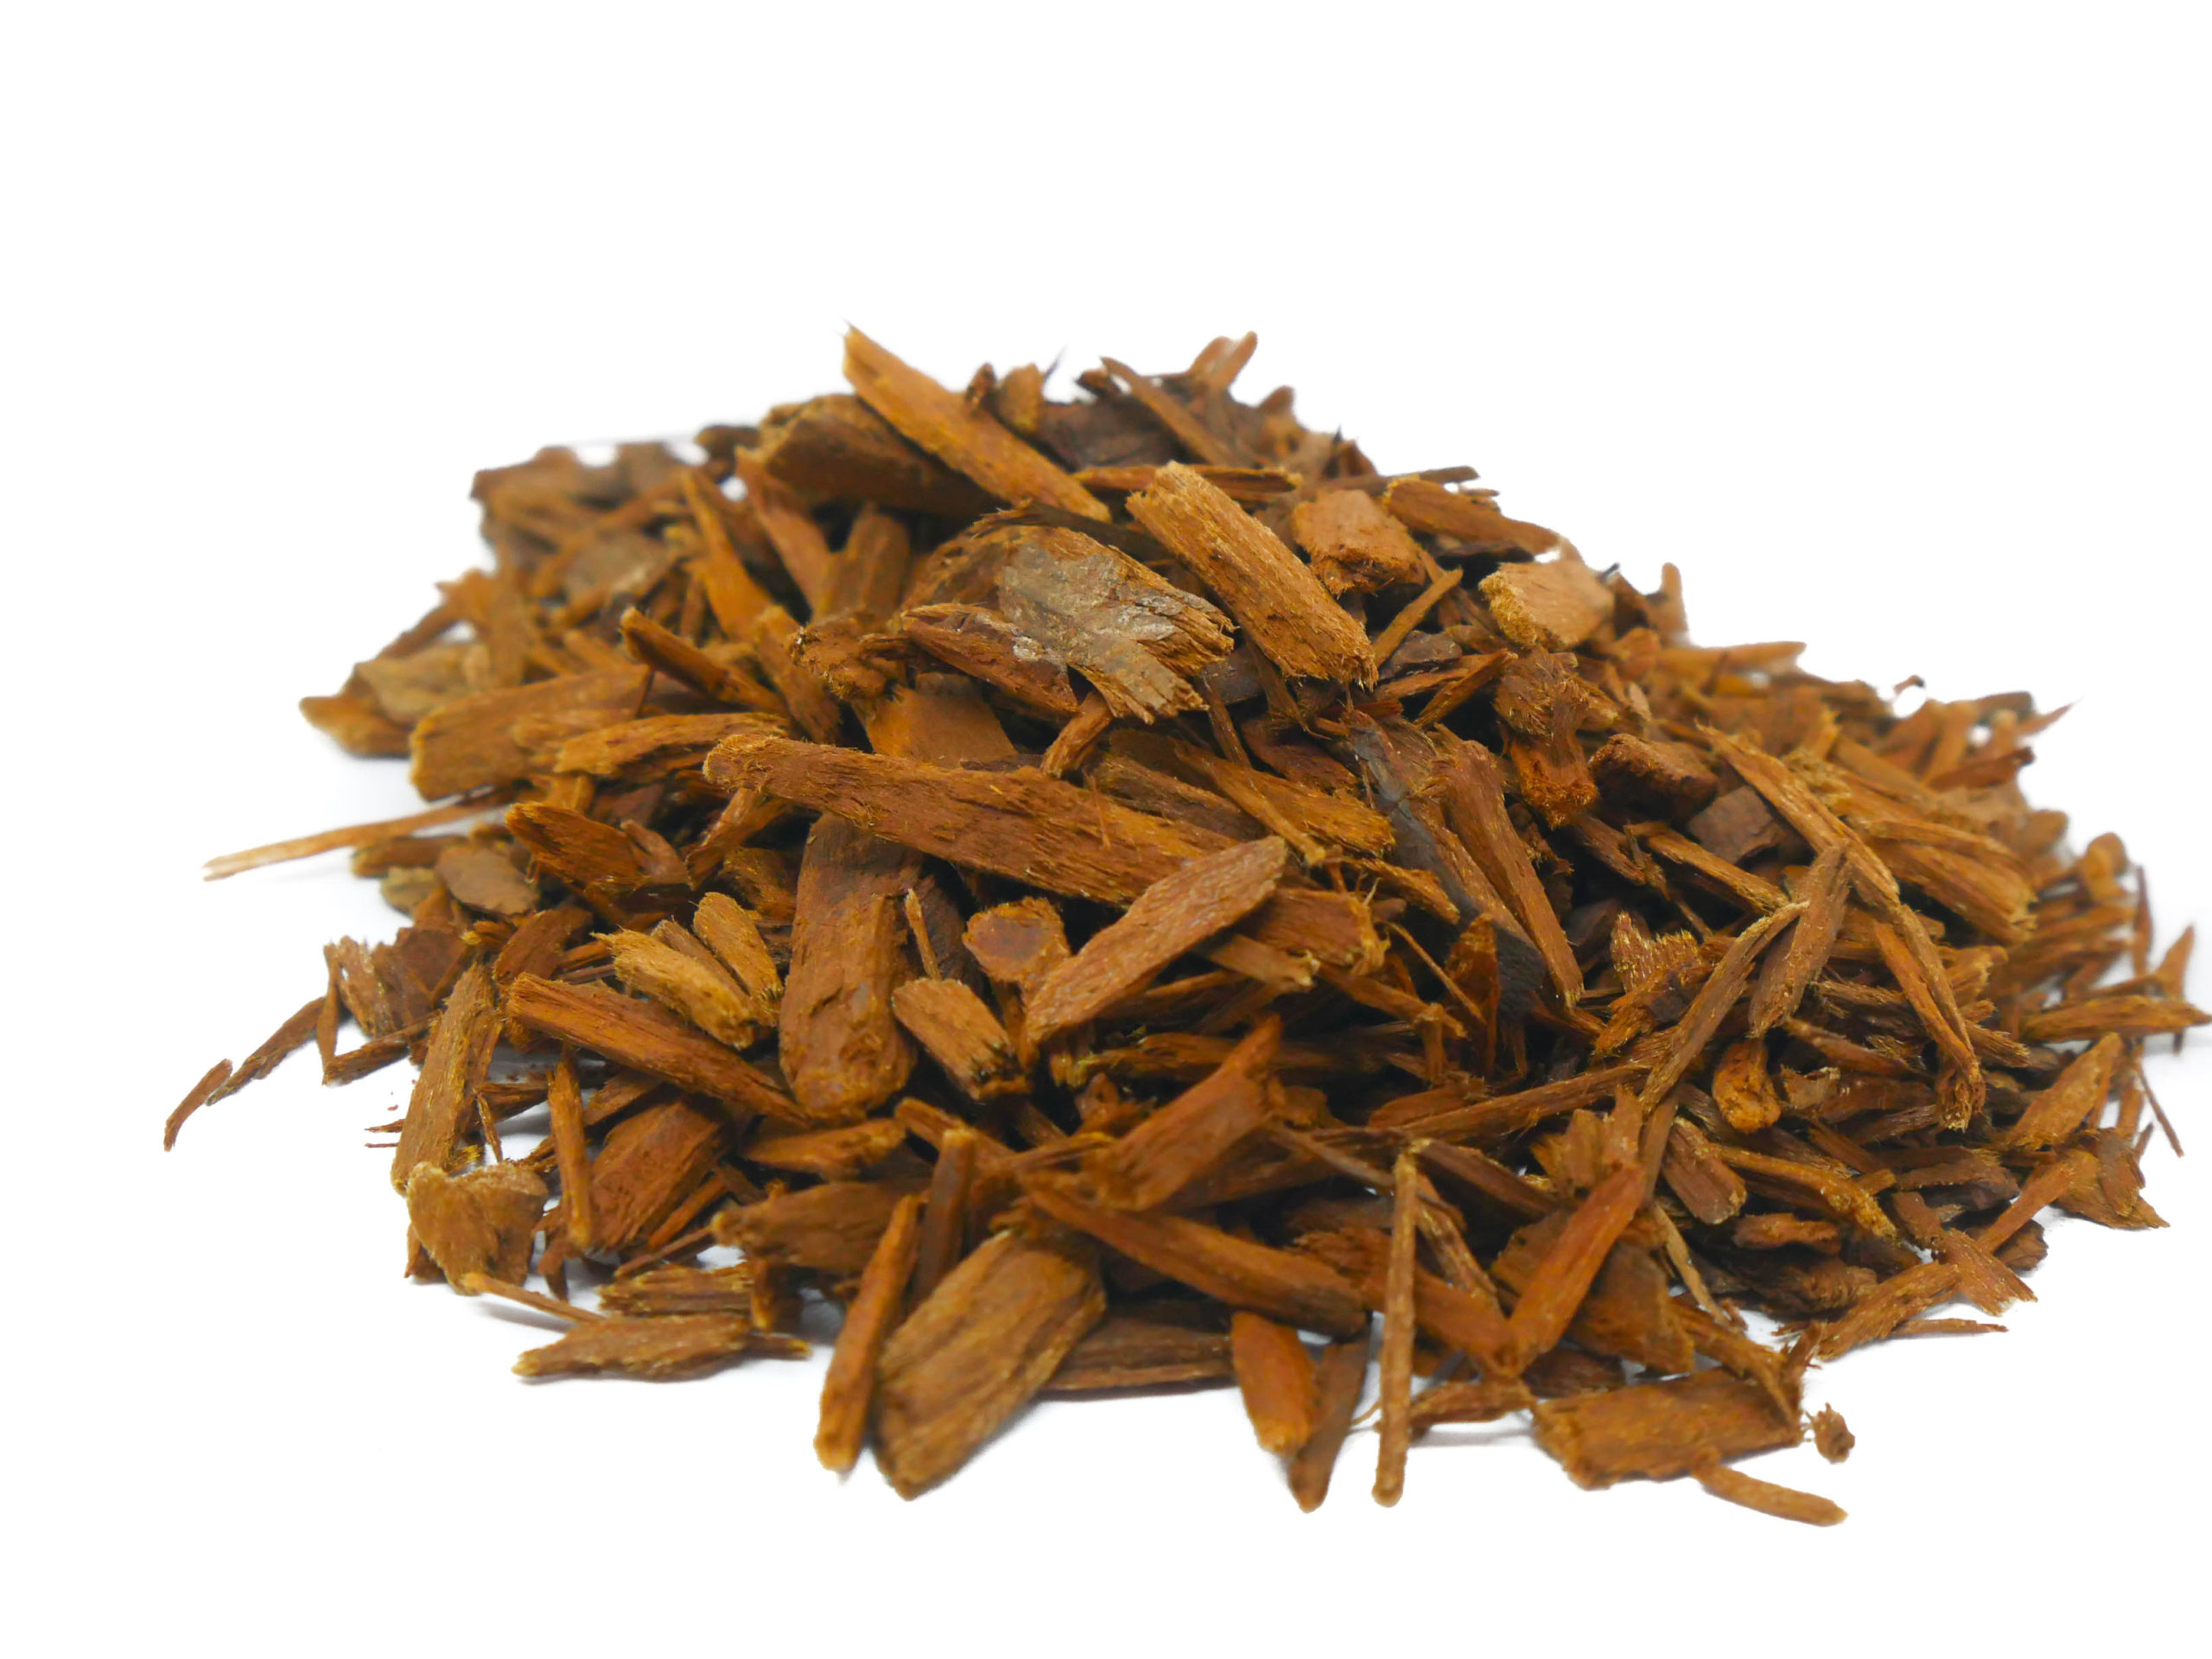 Order Yohimbe bark from the Natural Spot